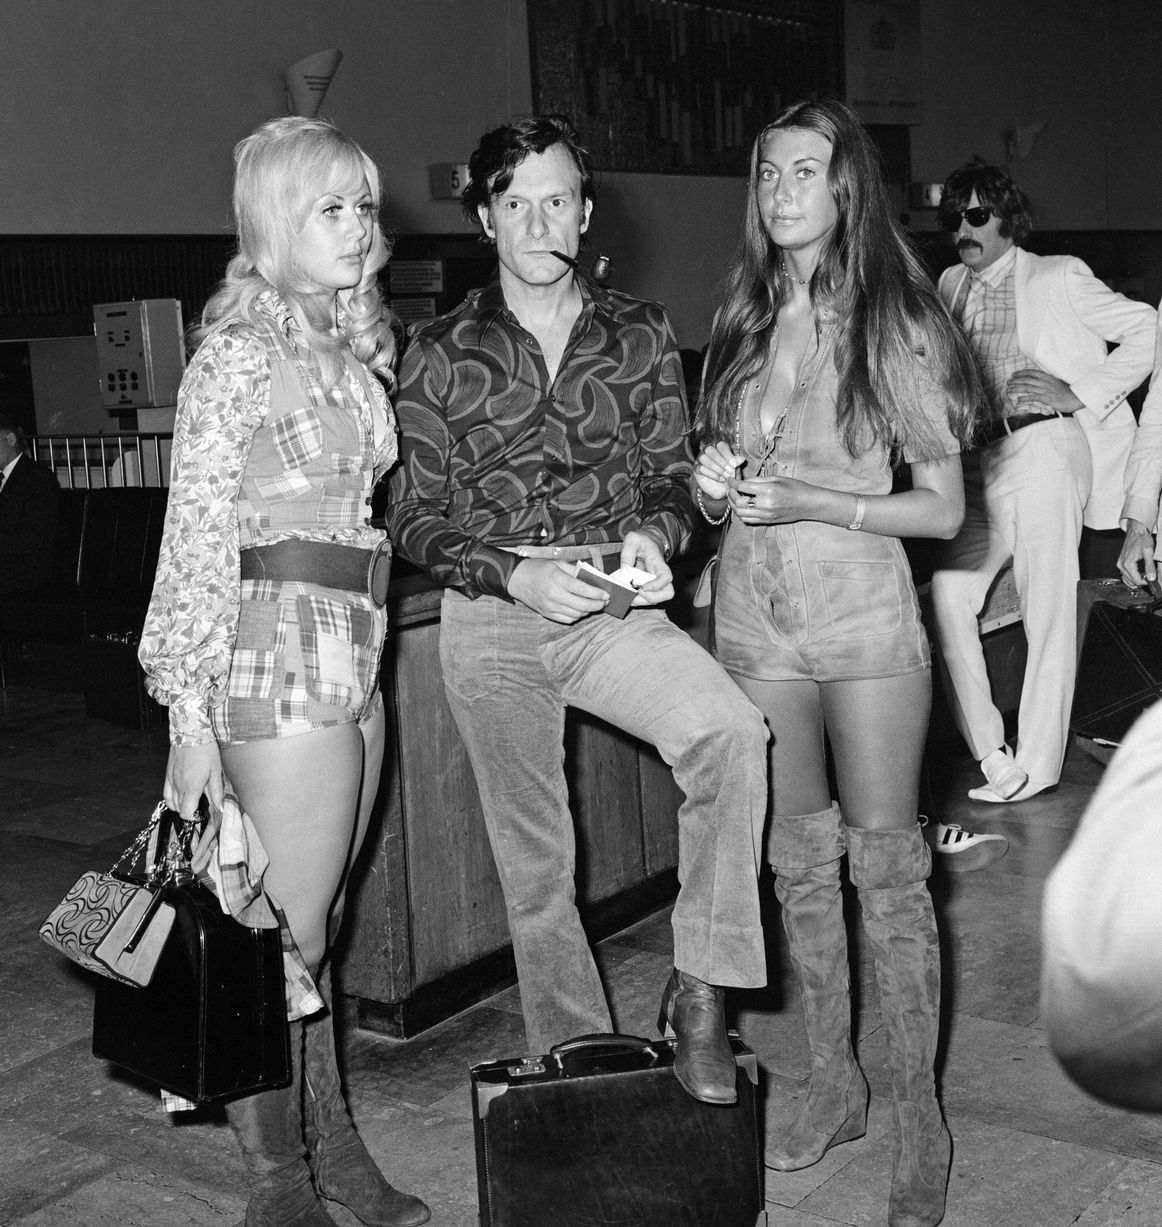 Everette hatcher iii the daily hatch page 10 8th august 1971 the playboy boss pictured at heathrow airport before his flight to saint tropezhefner created playboy as the first stylish glossy mens fandeluxe Gallery